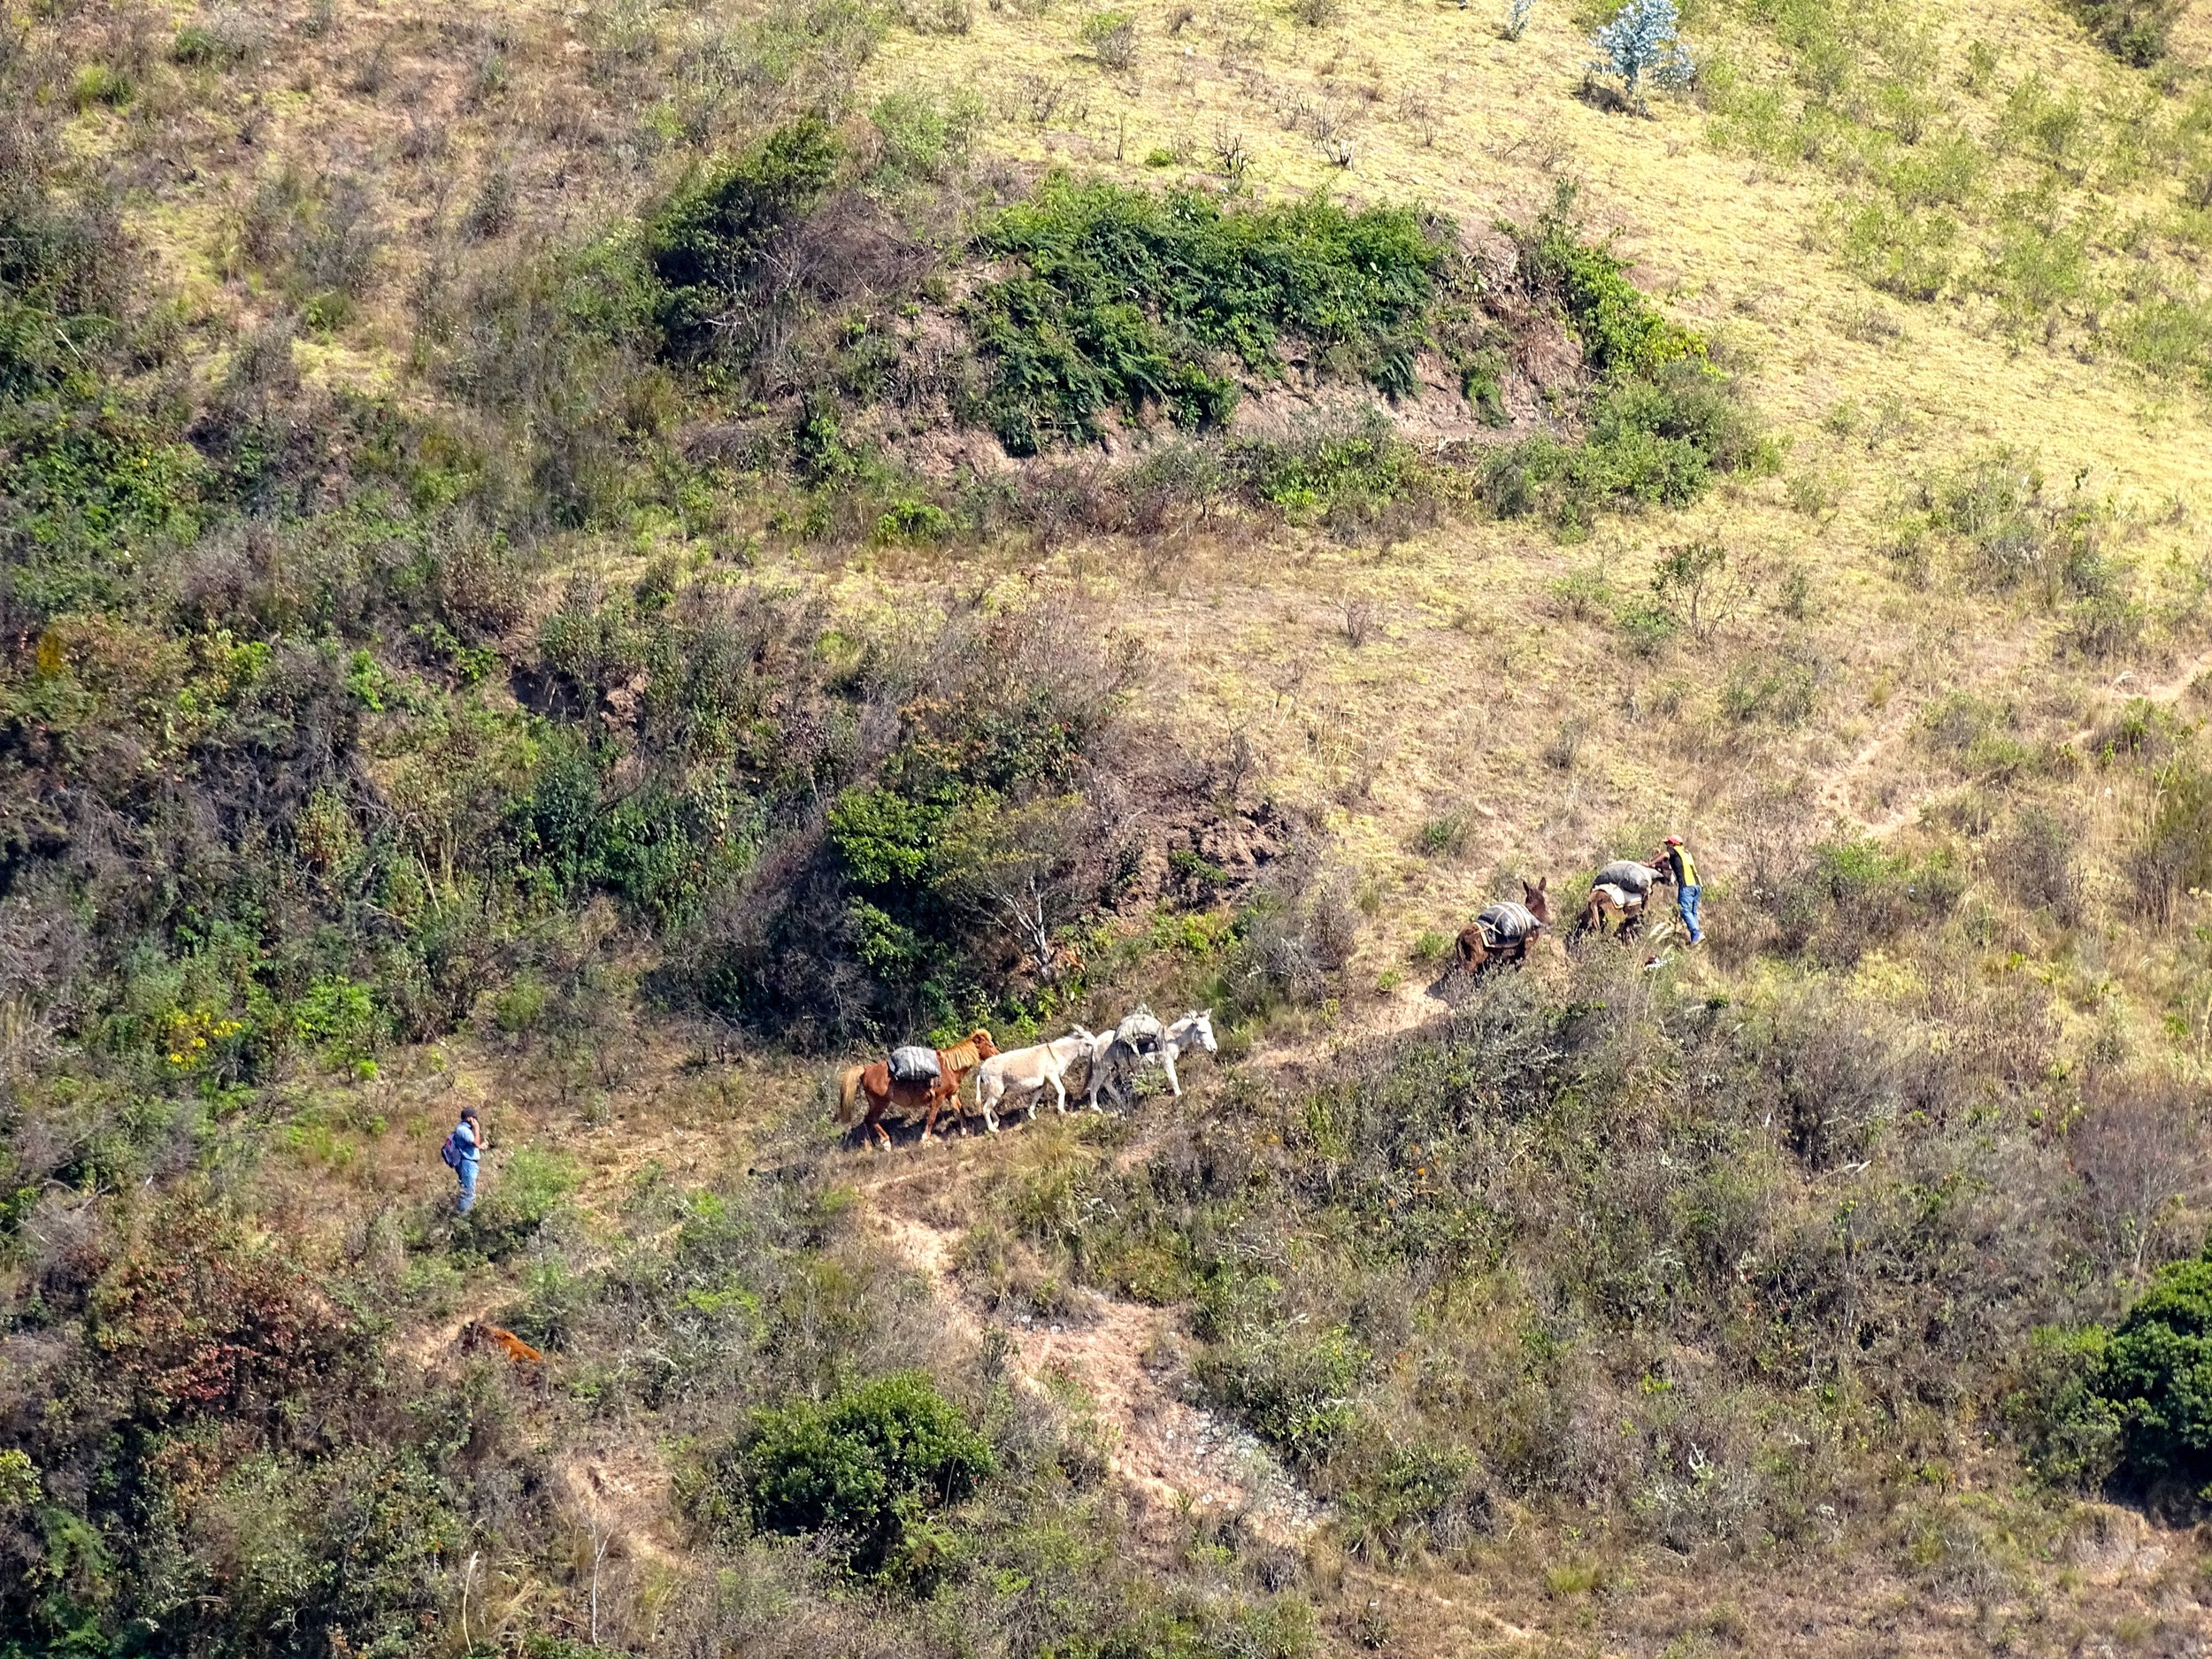 A view from the road of folks traveling with mules through the mountain trails.